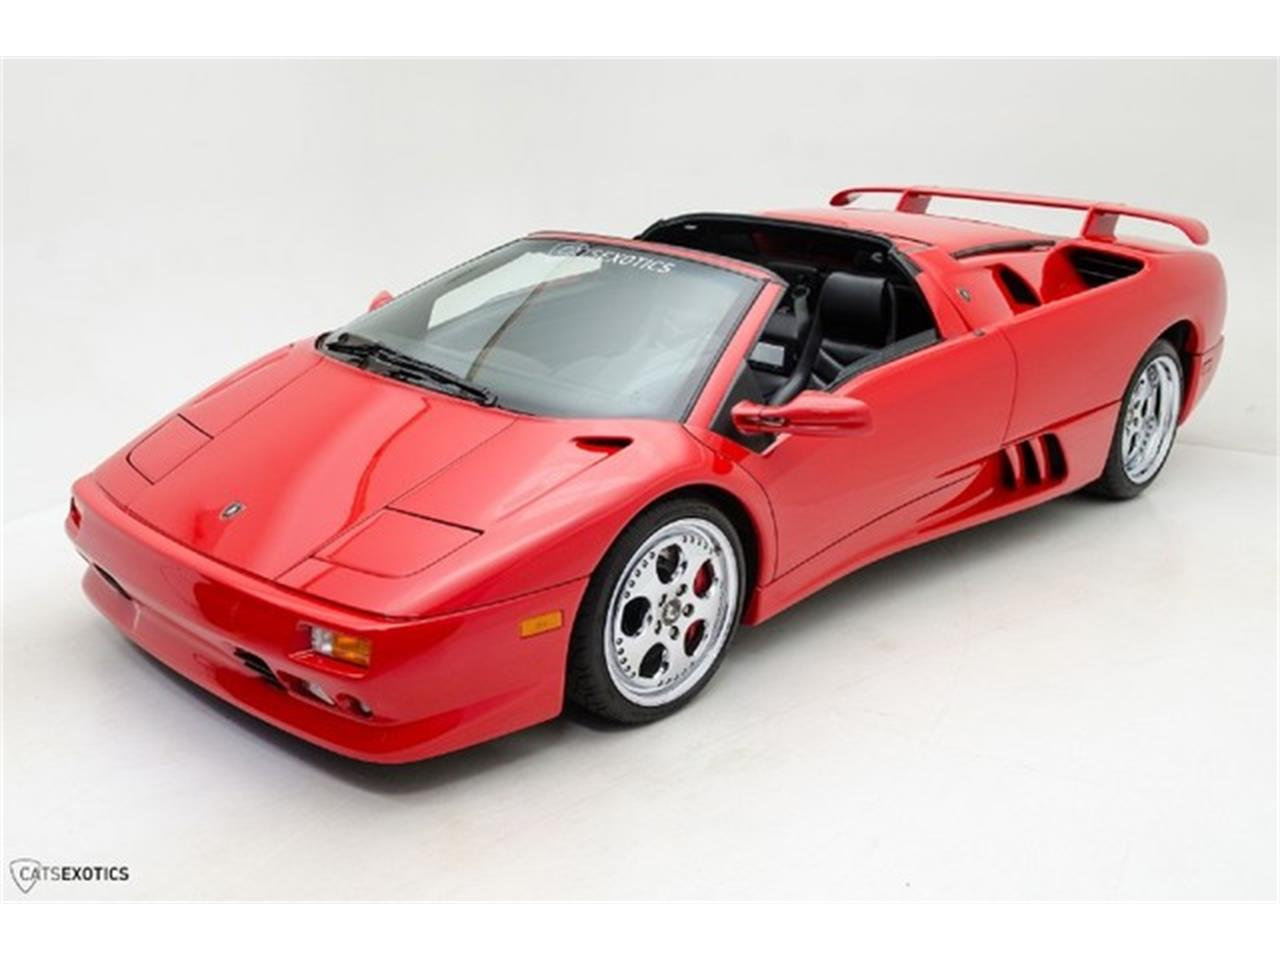 Large Picture of '98 Lamborghini Diablo located in Washington Offered by Cats Exotics - HZIS